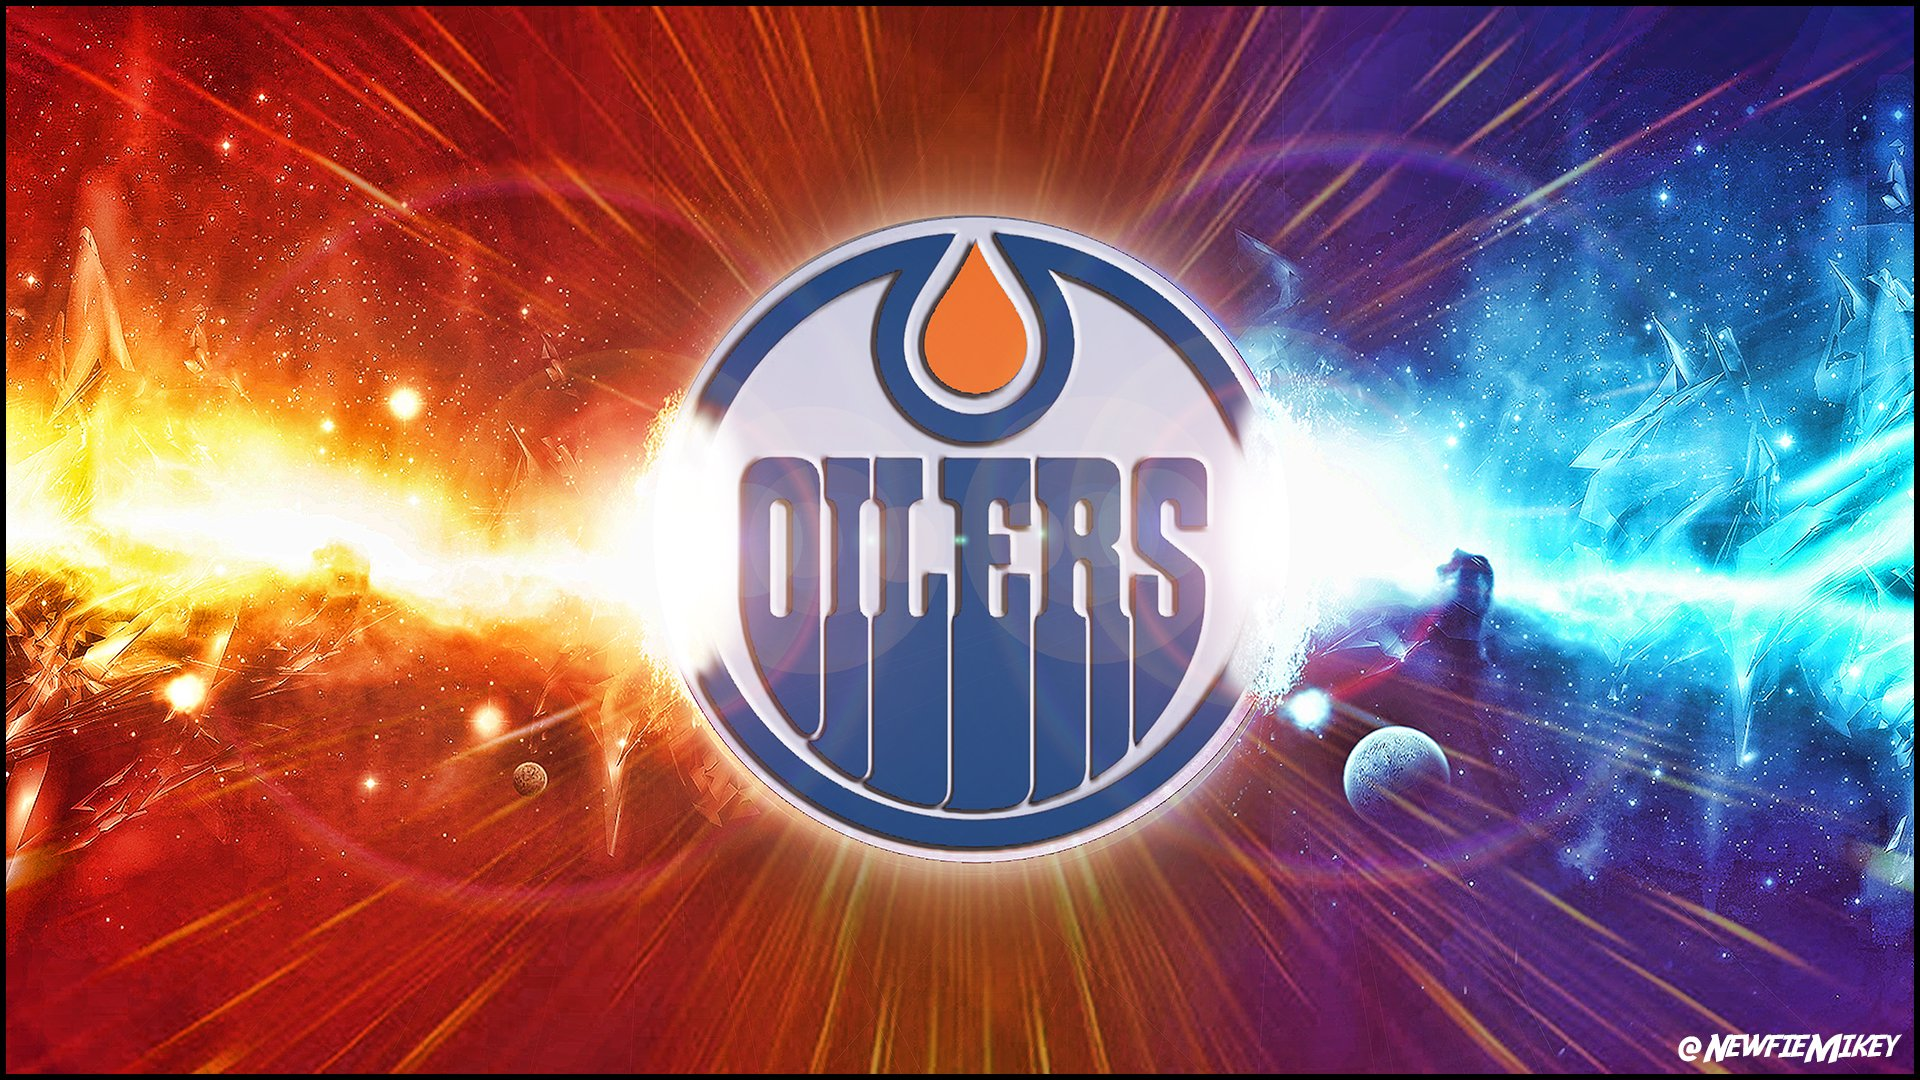 Oilers Game Highlights | NHL.com